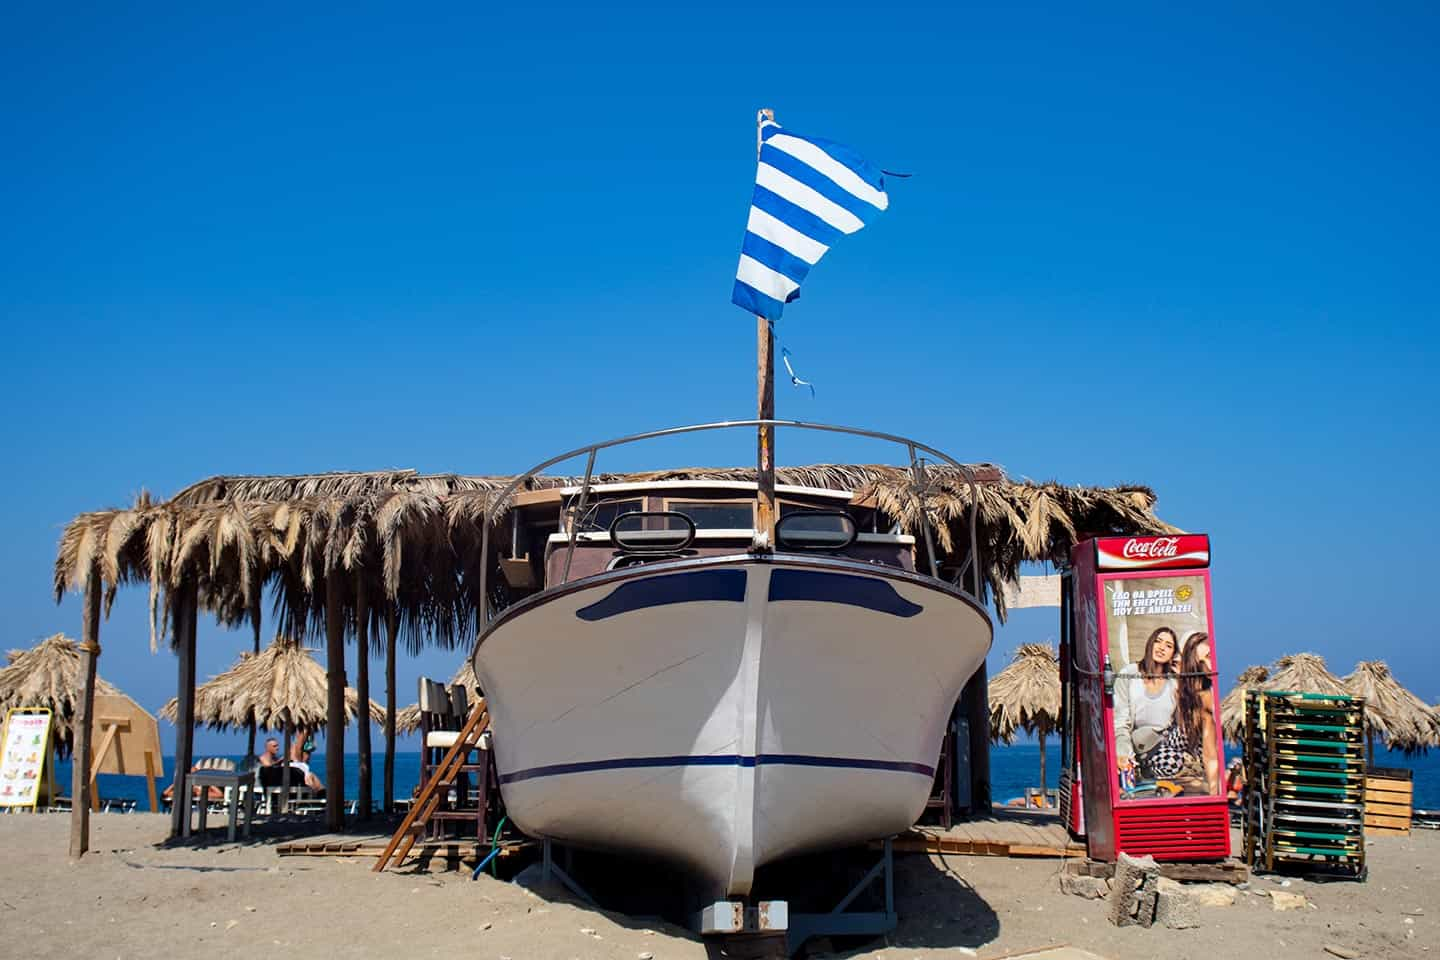 Image of the boat at the cocktail bar at Geropotamos beach Crete